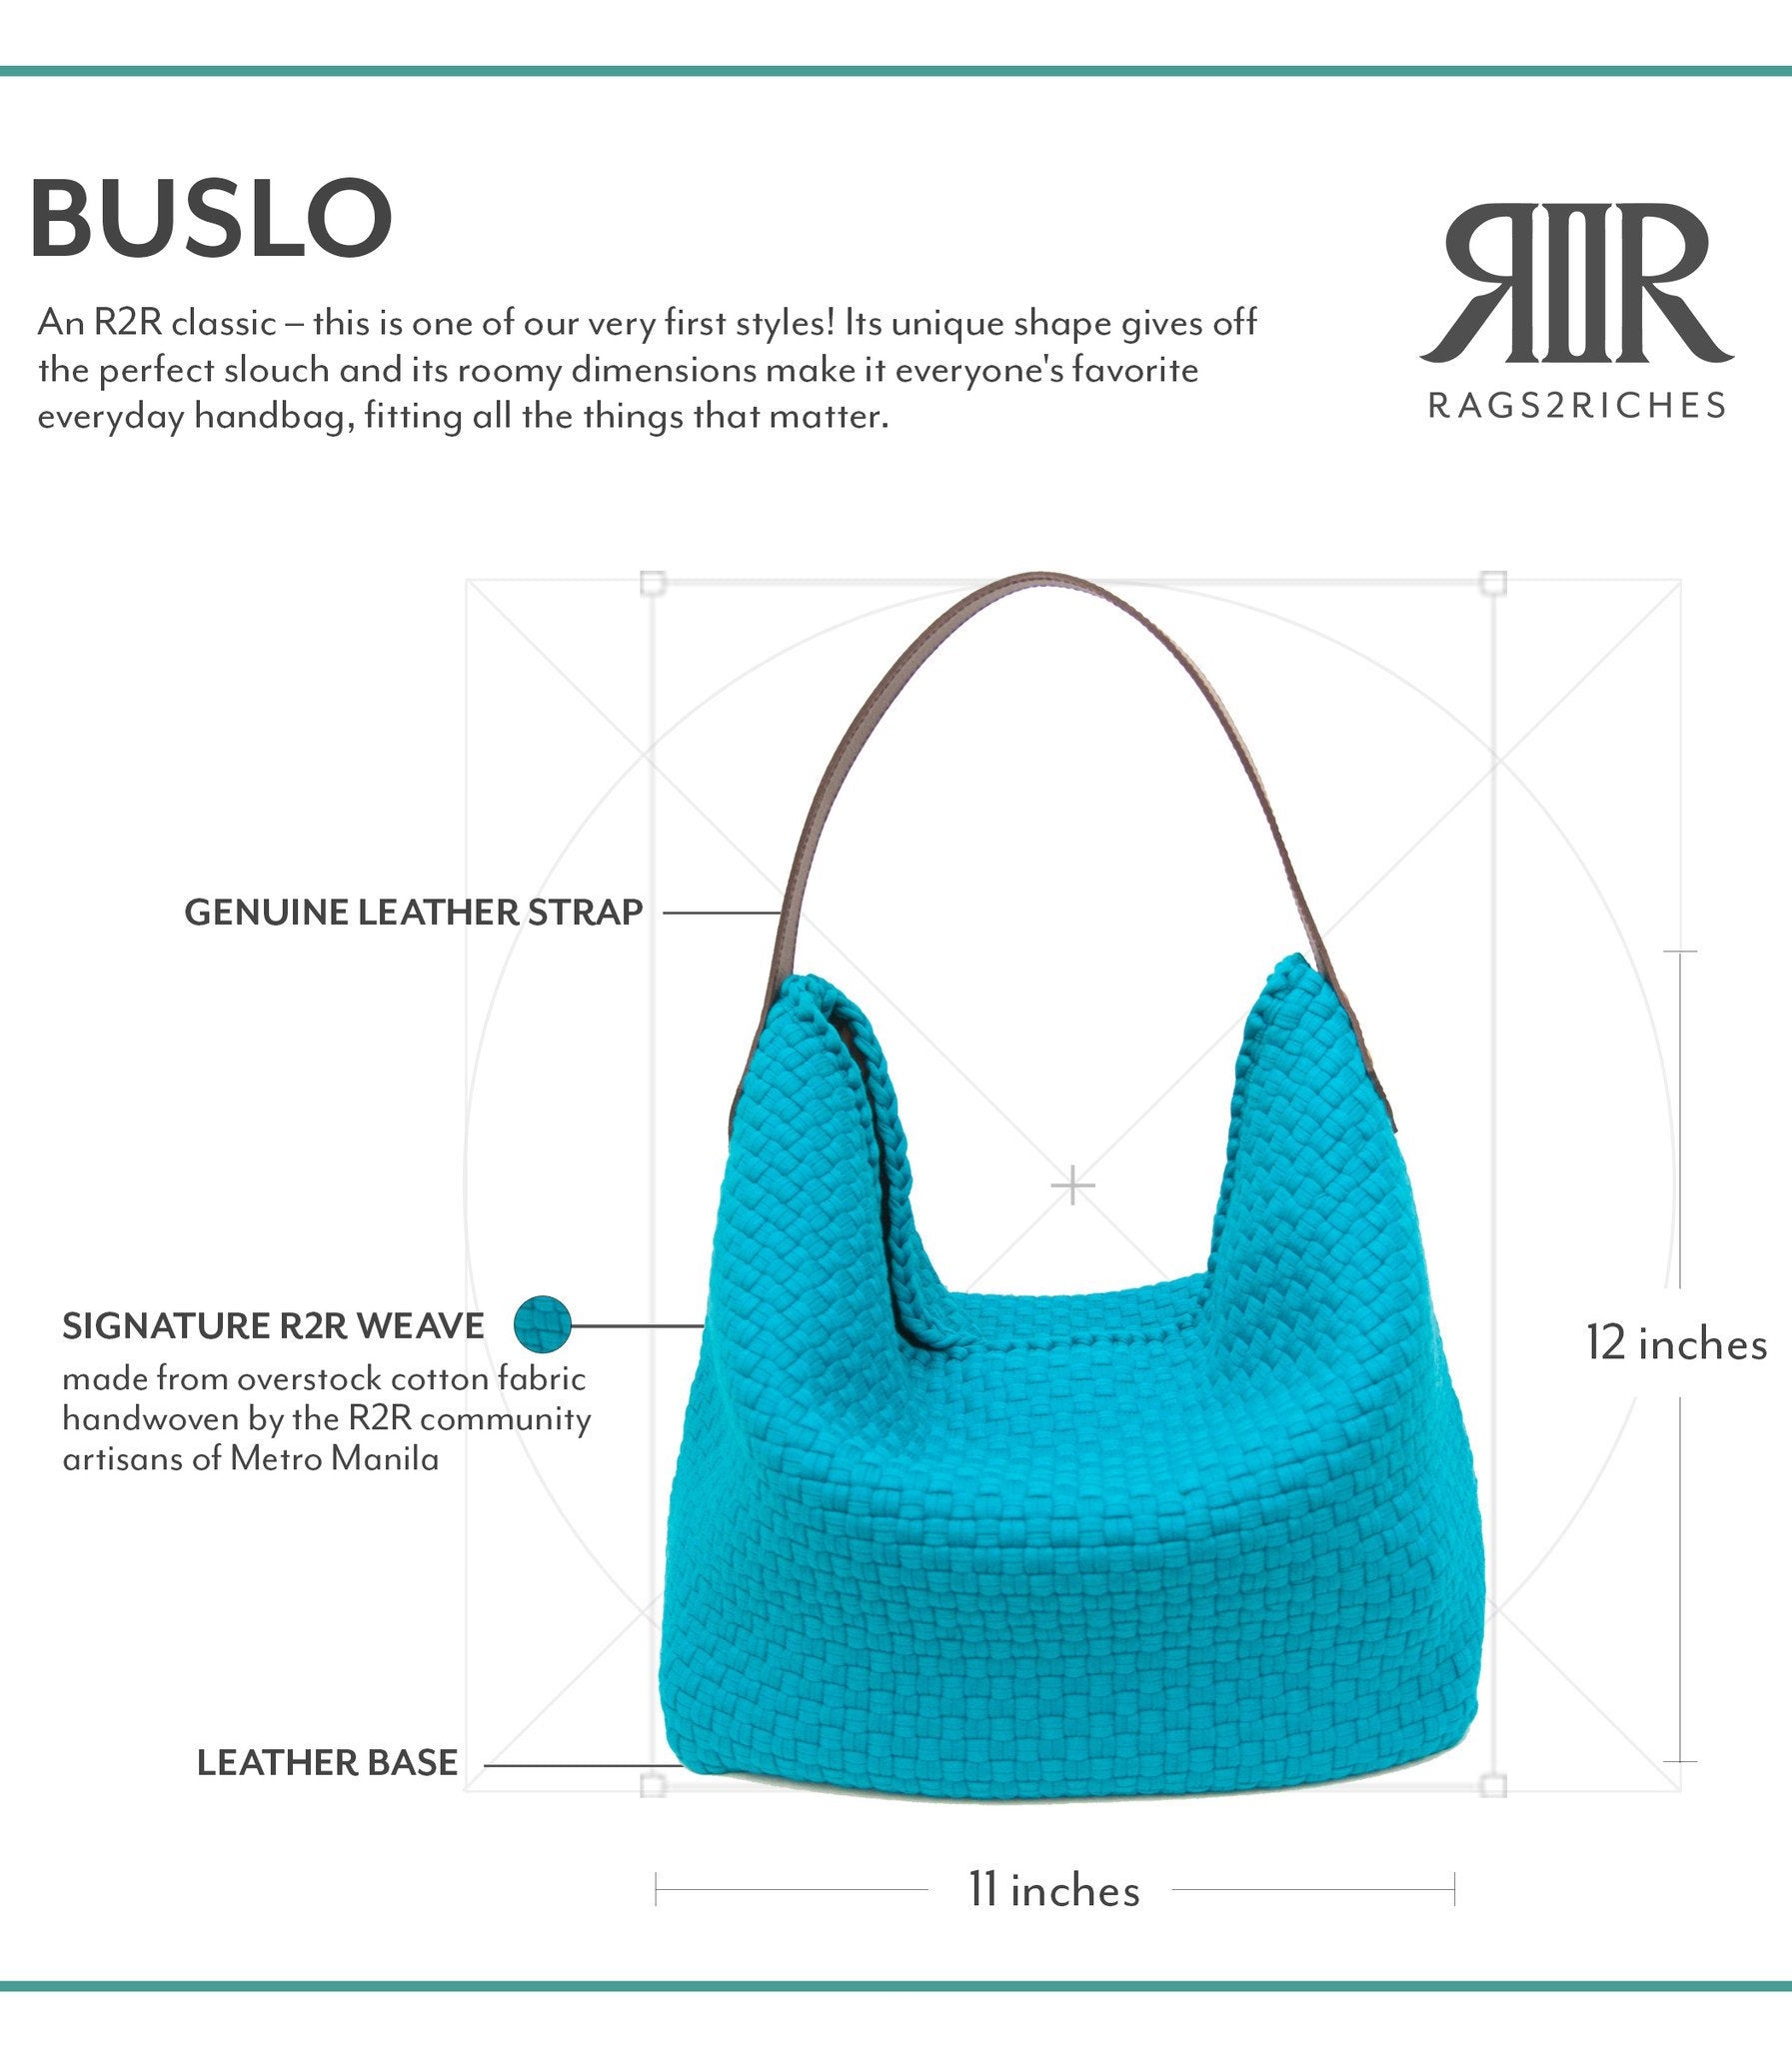 Buslo Bag Dimensions - Rags2Riches